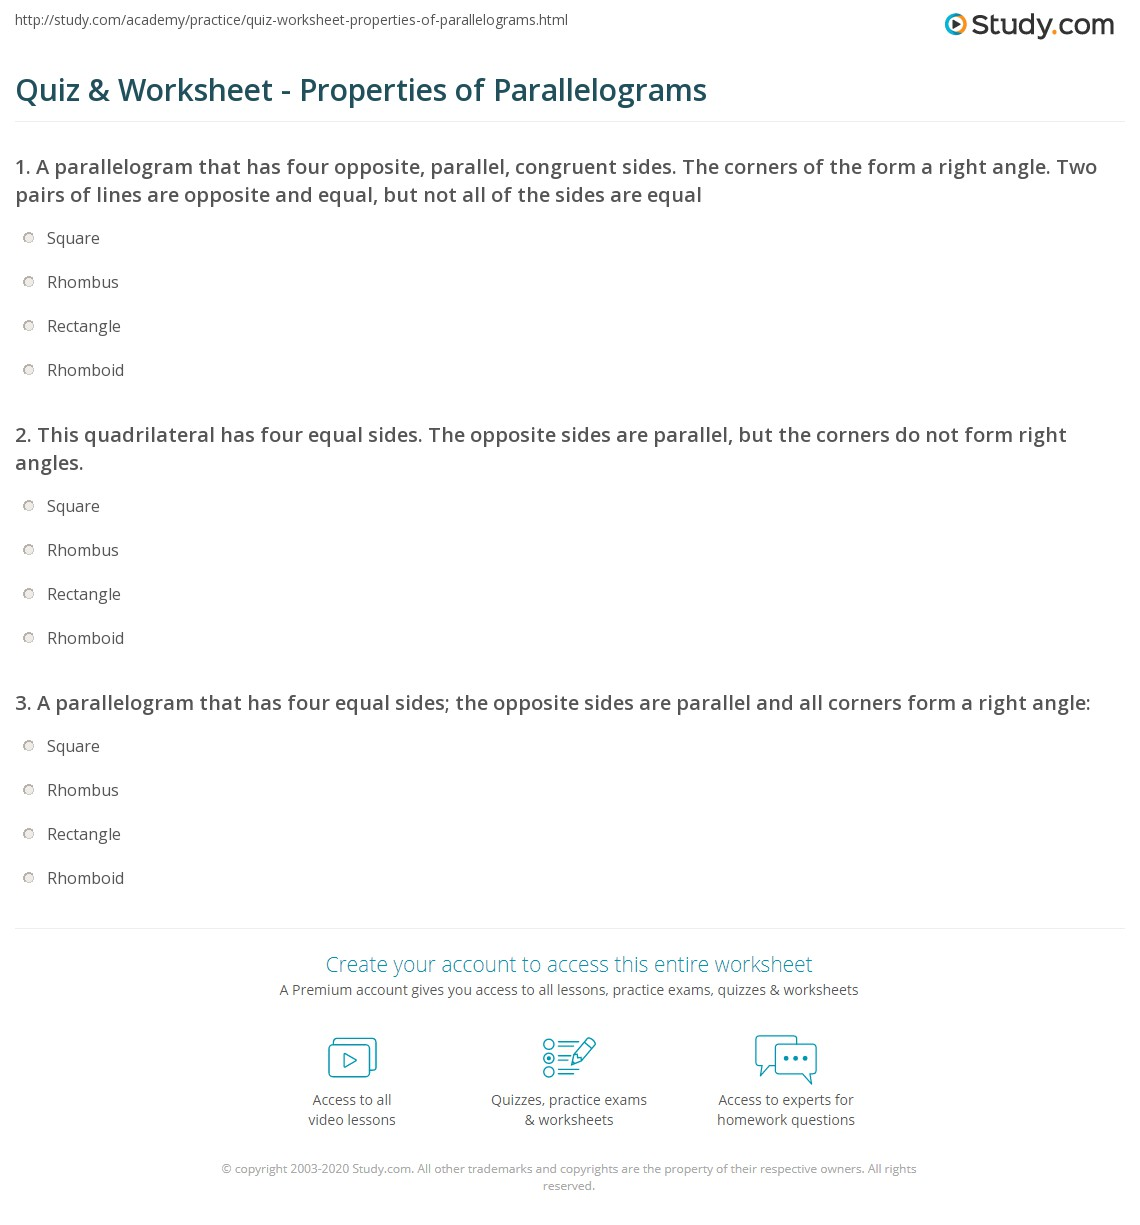 worksheet Properties Of Parallelograms Worksheet quiz worksheet properties of parallelograms study com print parallelogram in geometry definition shapes worksheet